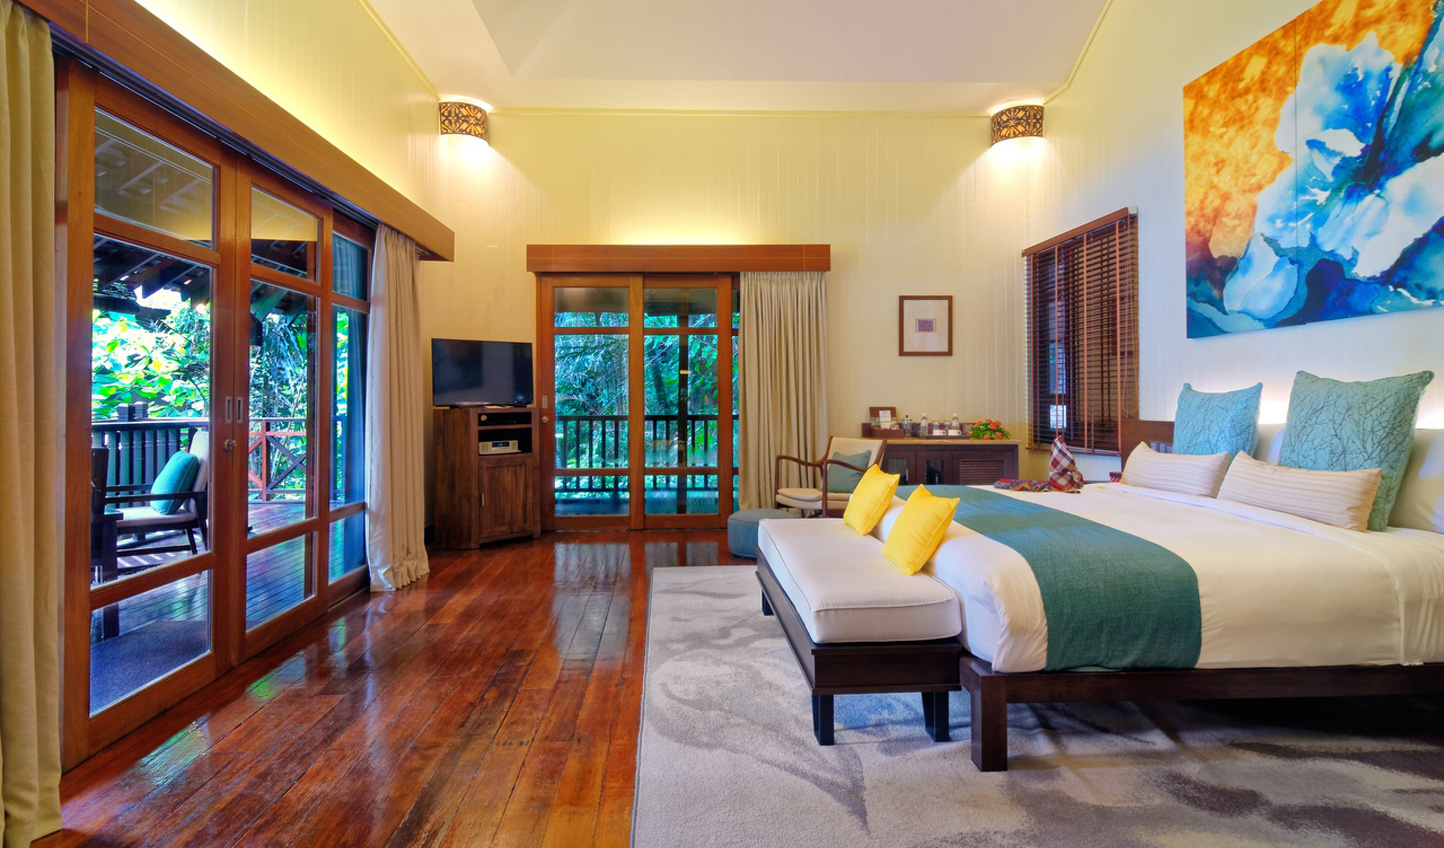 Sweeping views of the jungle from the rooms